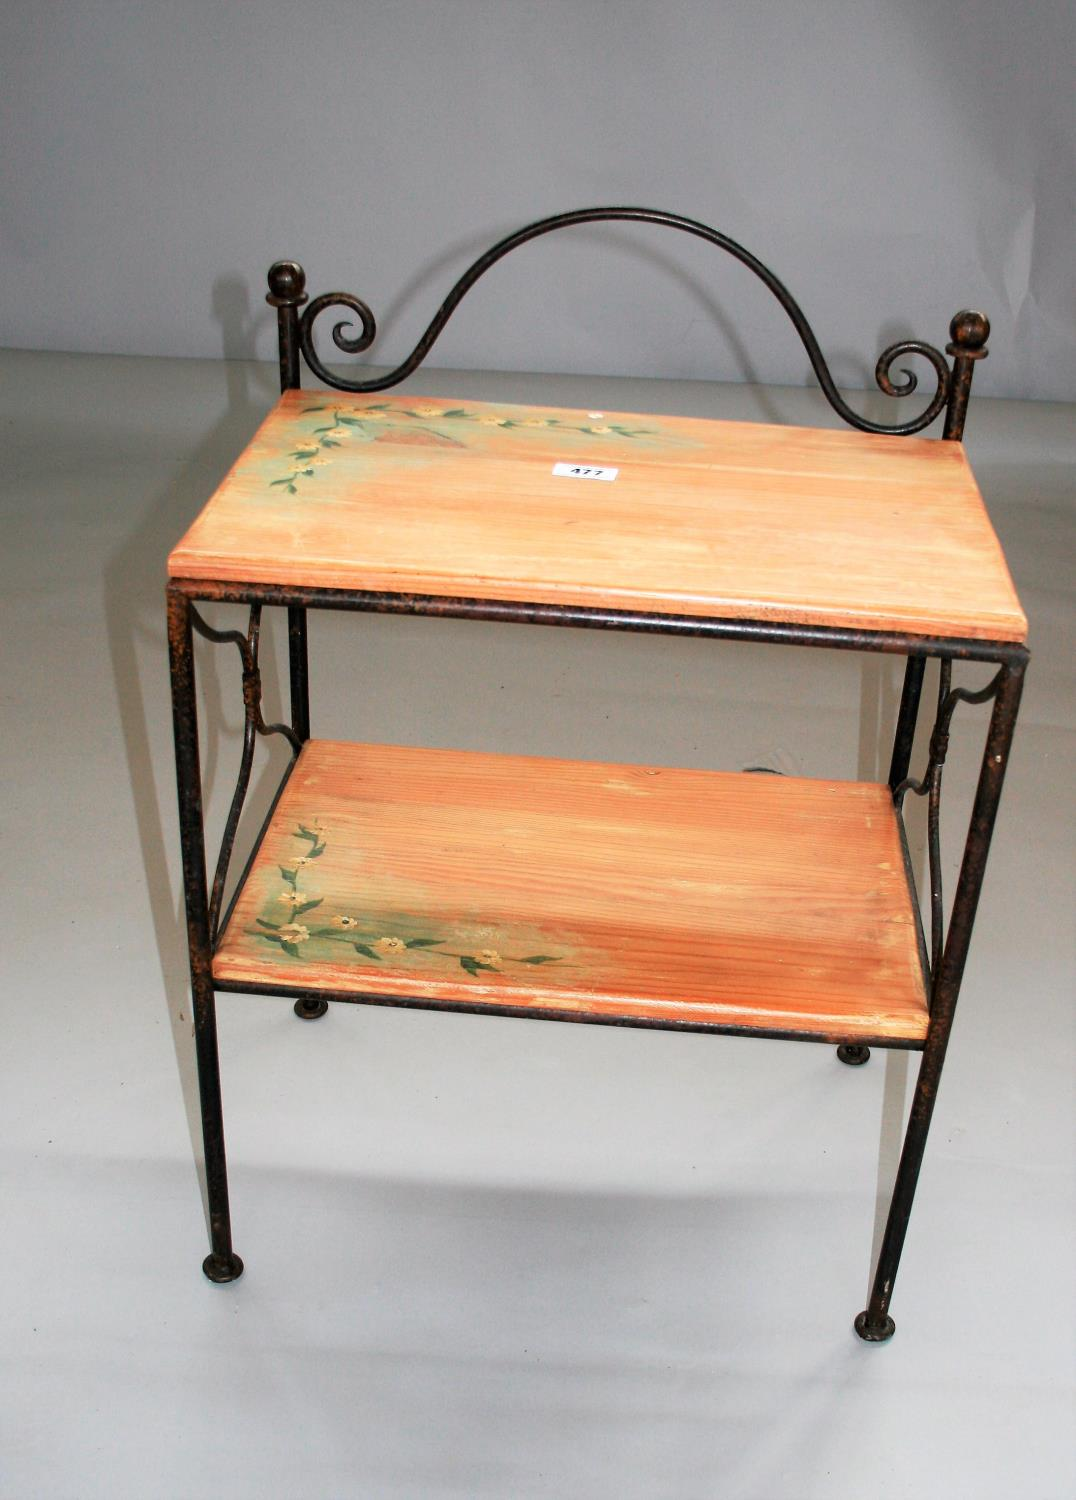 Wrought iron and painted wood two tier shelf and two pairs of bed side lockers 54W x 41H x 38D - Image 5 of 6